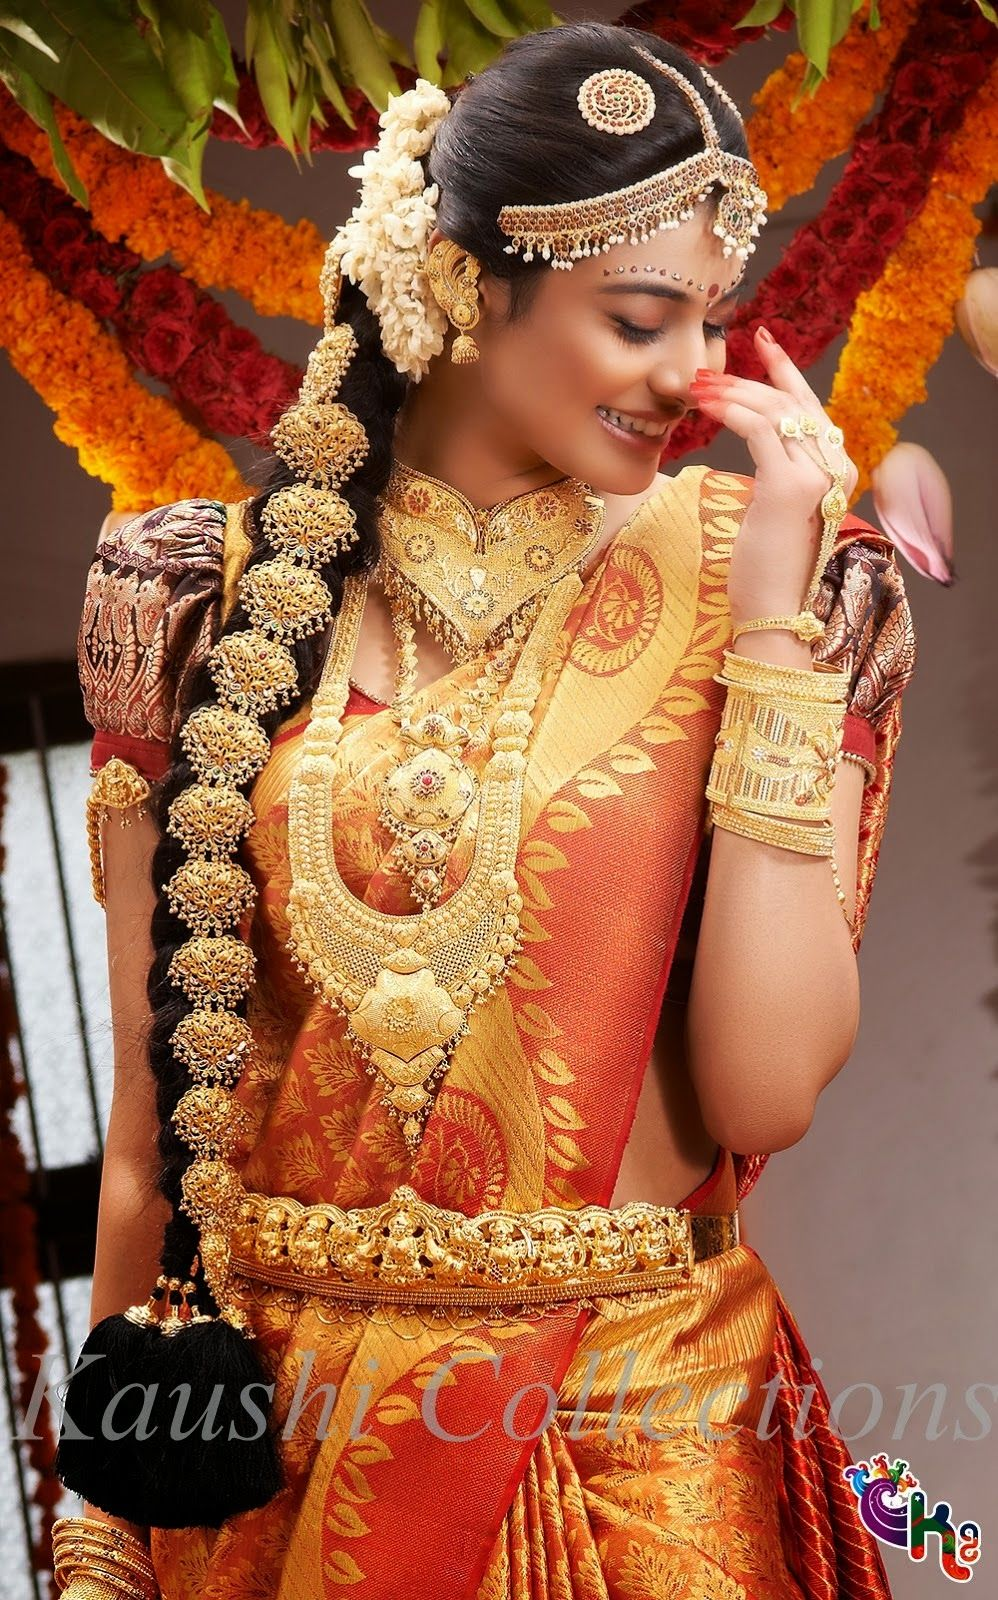 Kaushi collections how to choose wedding sarees womens wedding kaushi collections how to choose wedding sarees ombrellifo Gallery